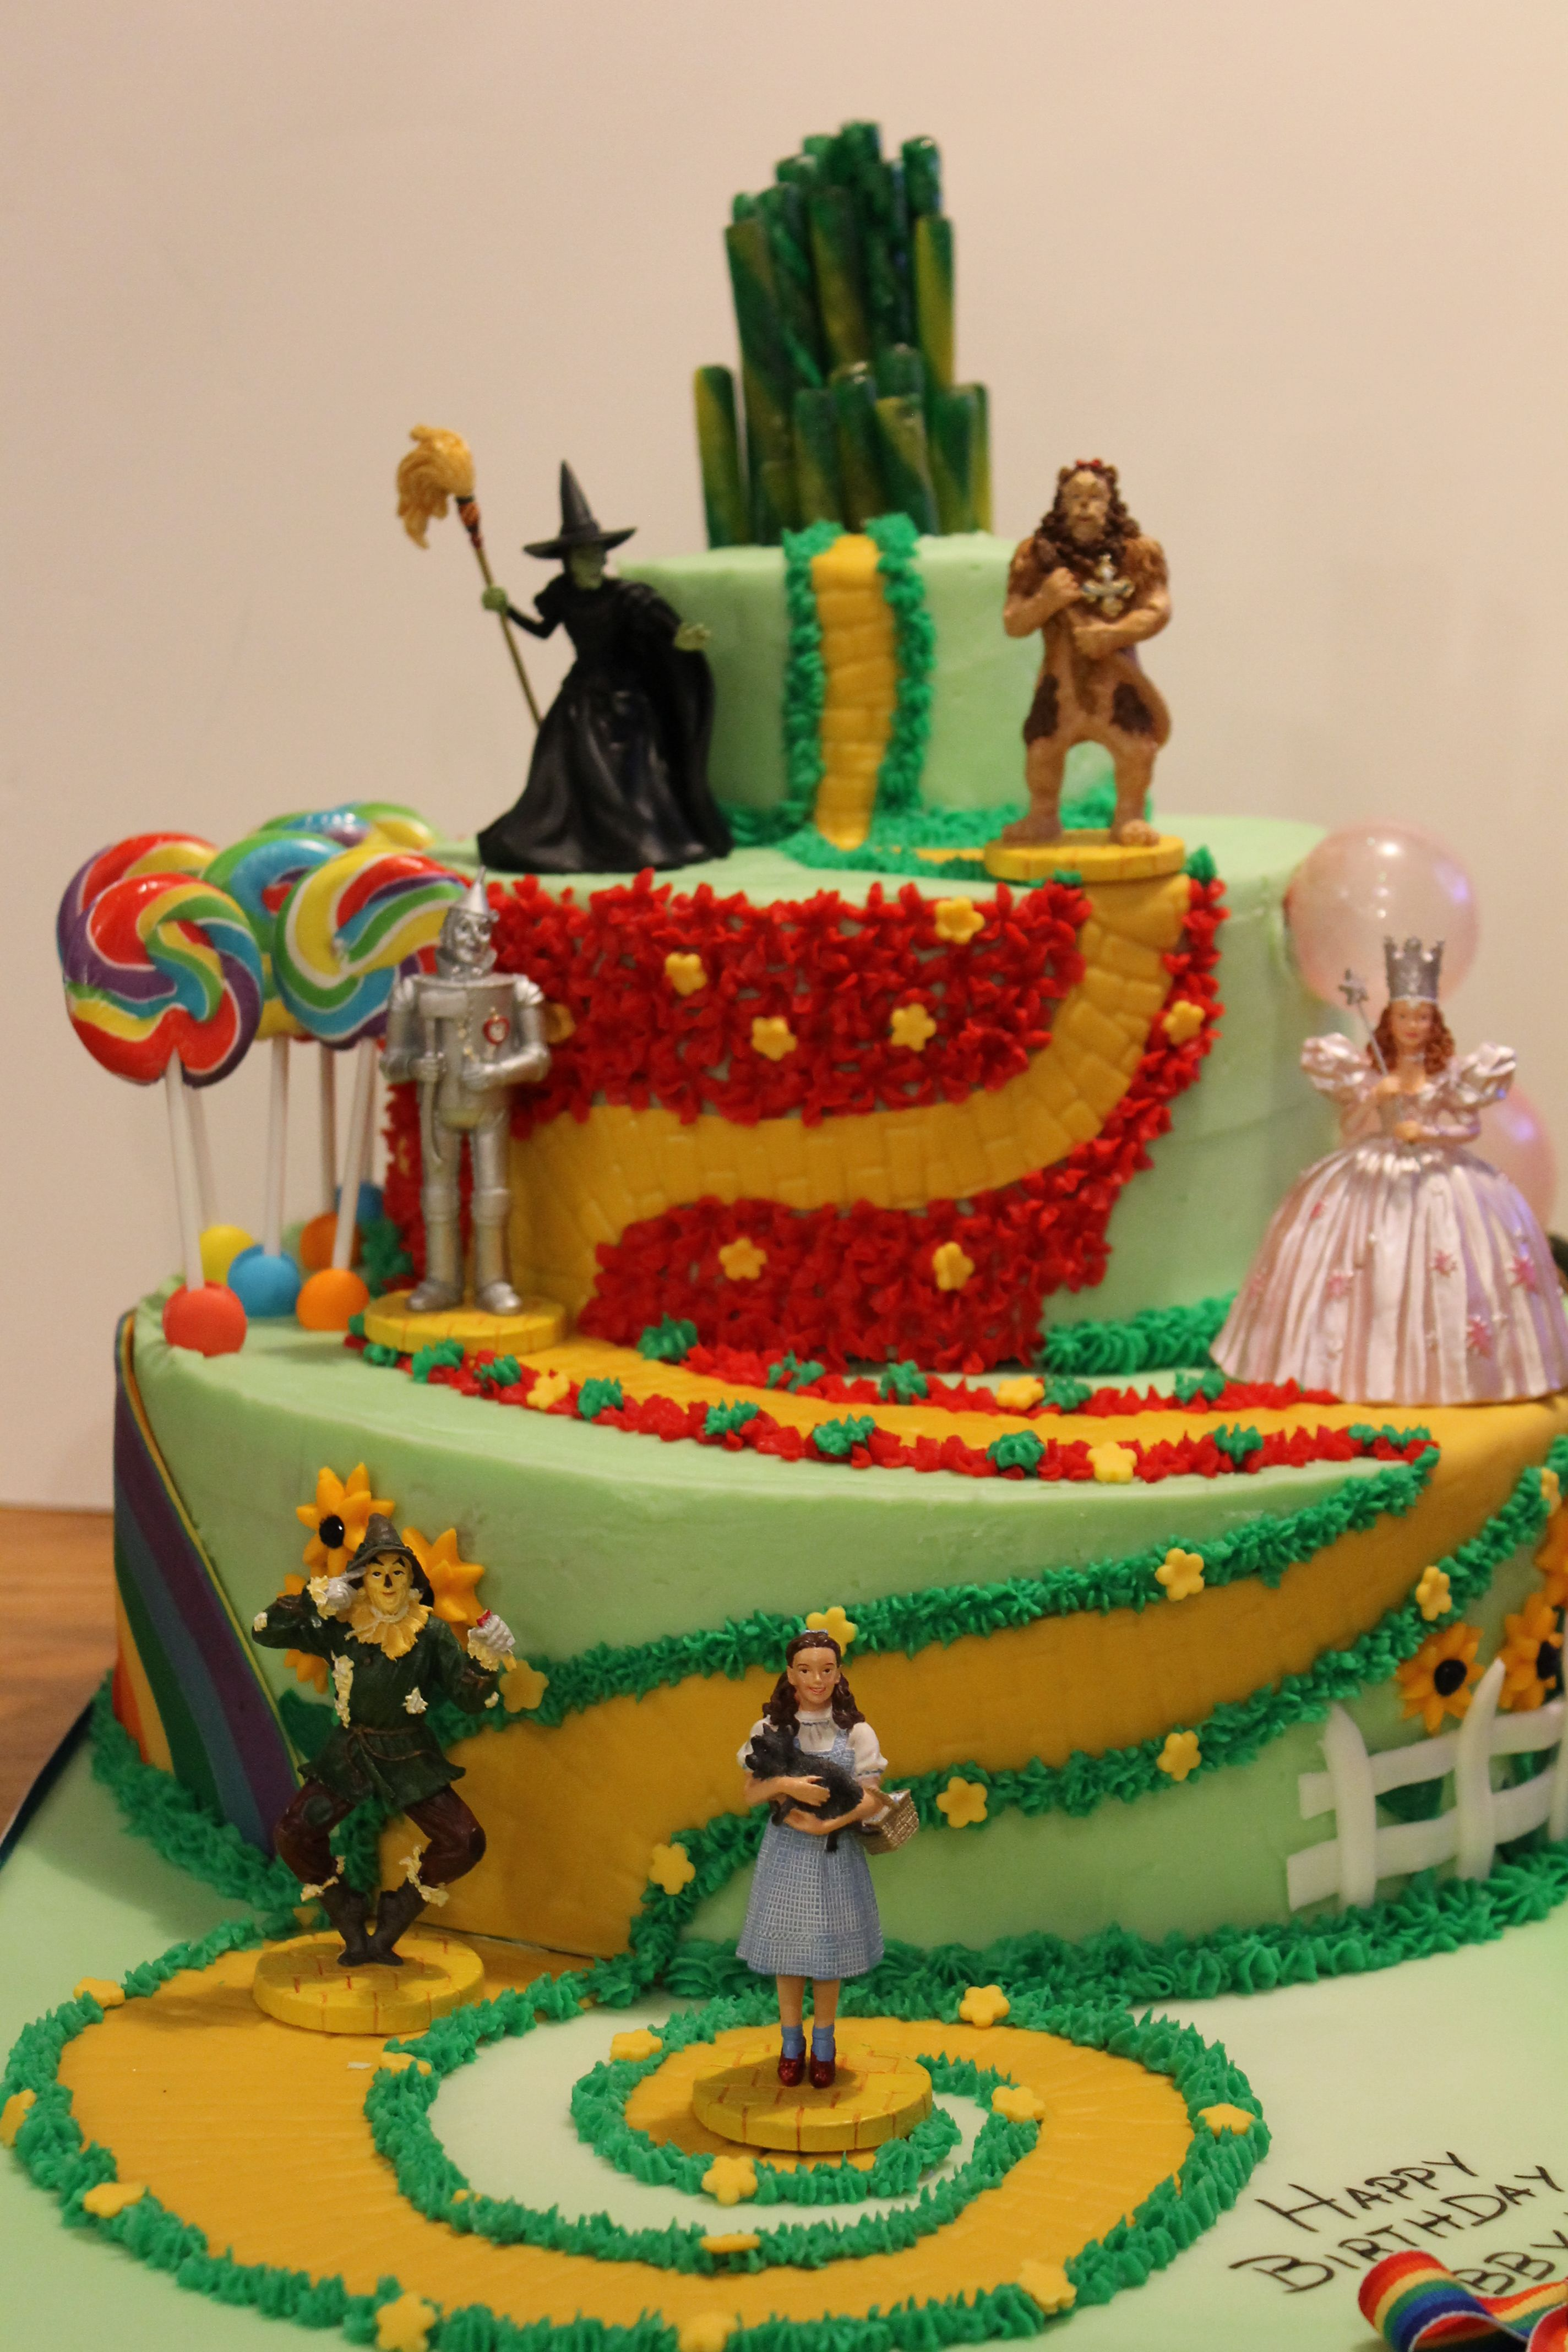 wizard of oz cake for abby 39 s birthday hoosier mama catering disney cakes fondant tutorials. Black Bedroom Furniture Sets. Home Design Ideas